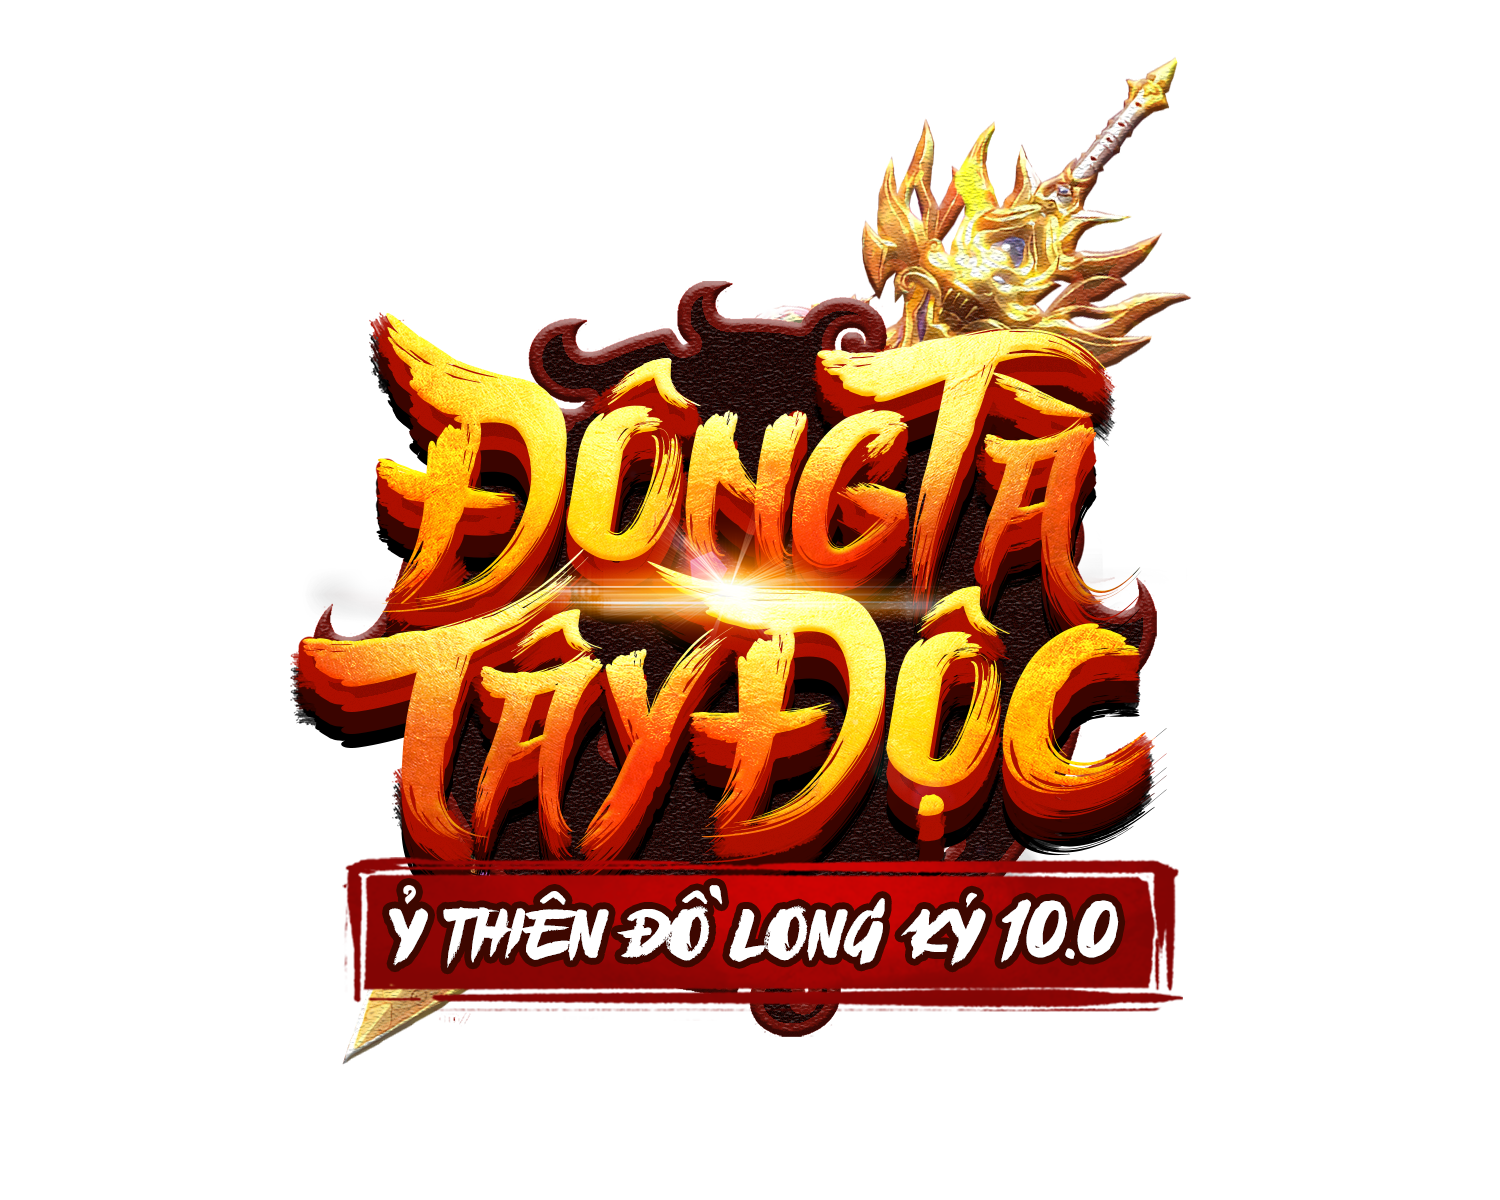 dong-ta-tay-doc-noi-dung-update